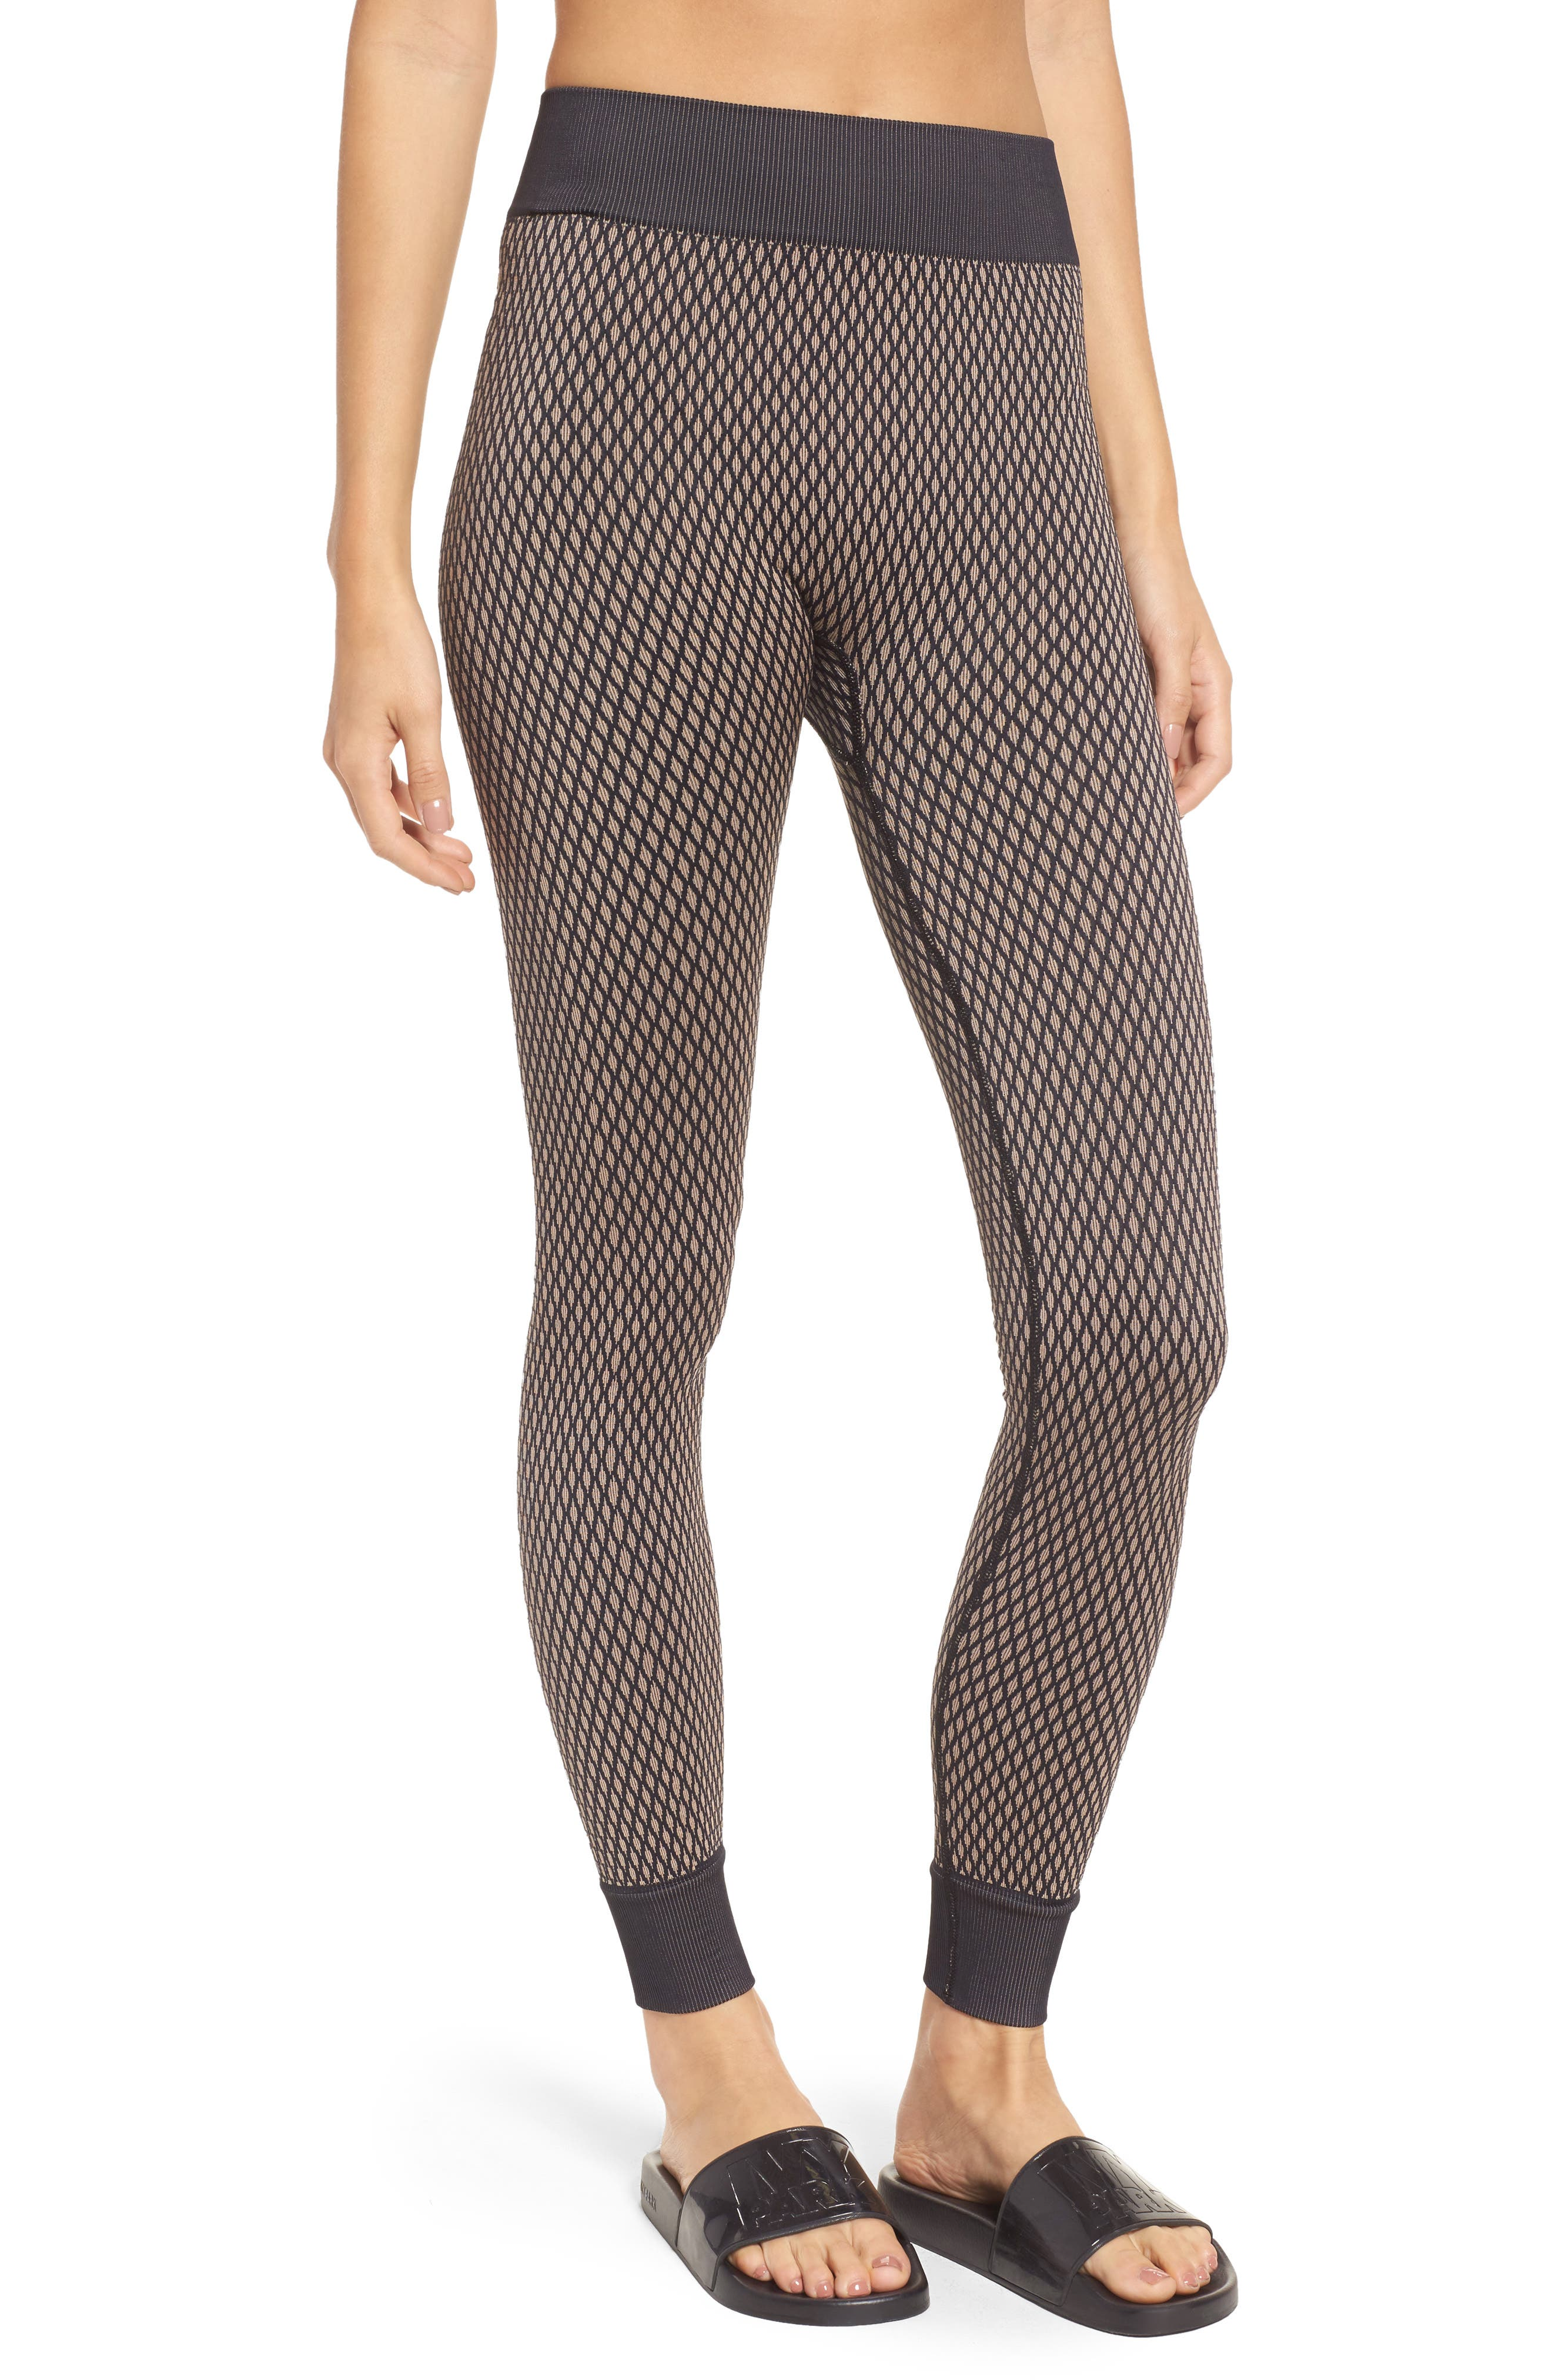 Alternate Image 1 Selected - IVY PARK® Fishnet Seamless Leggings